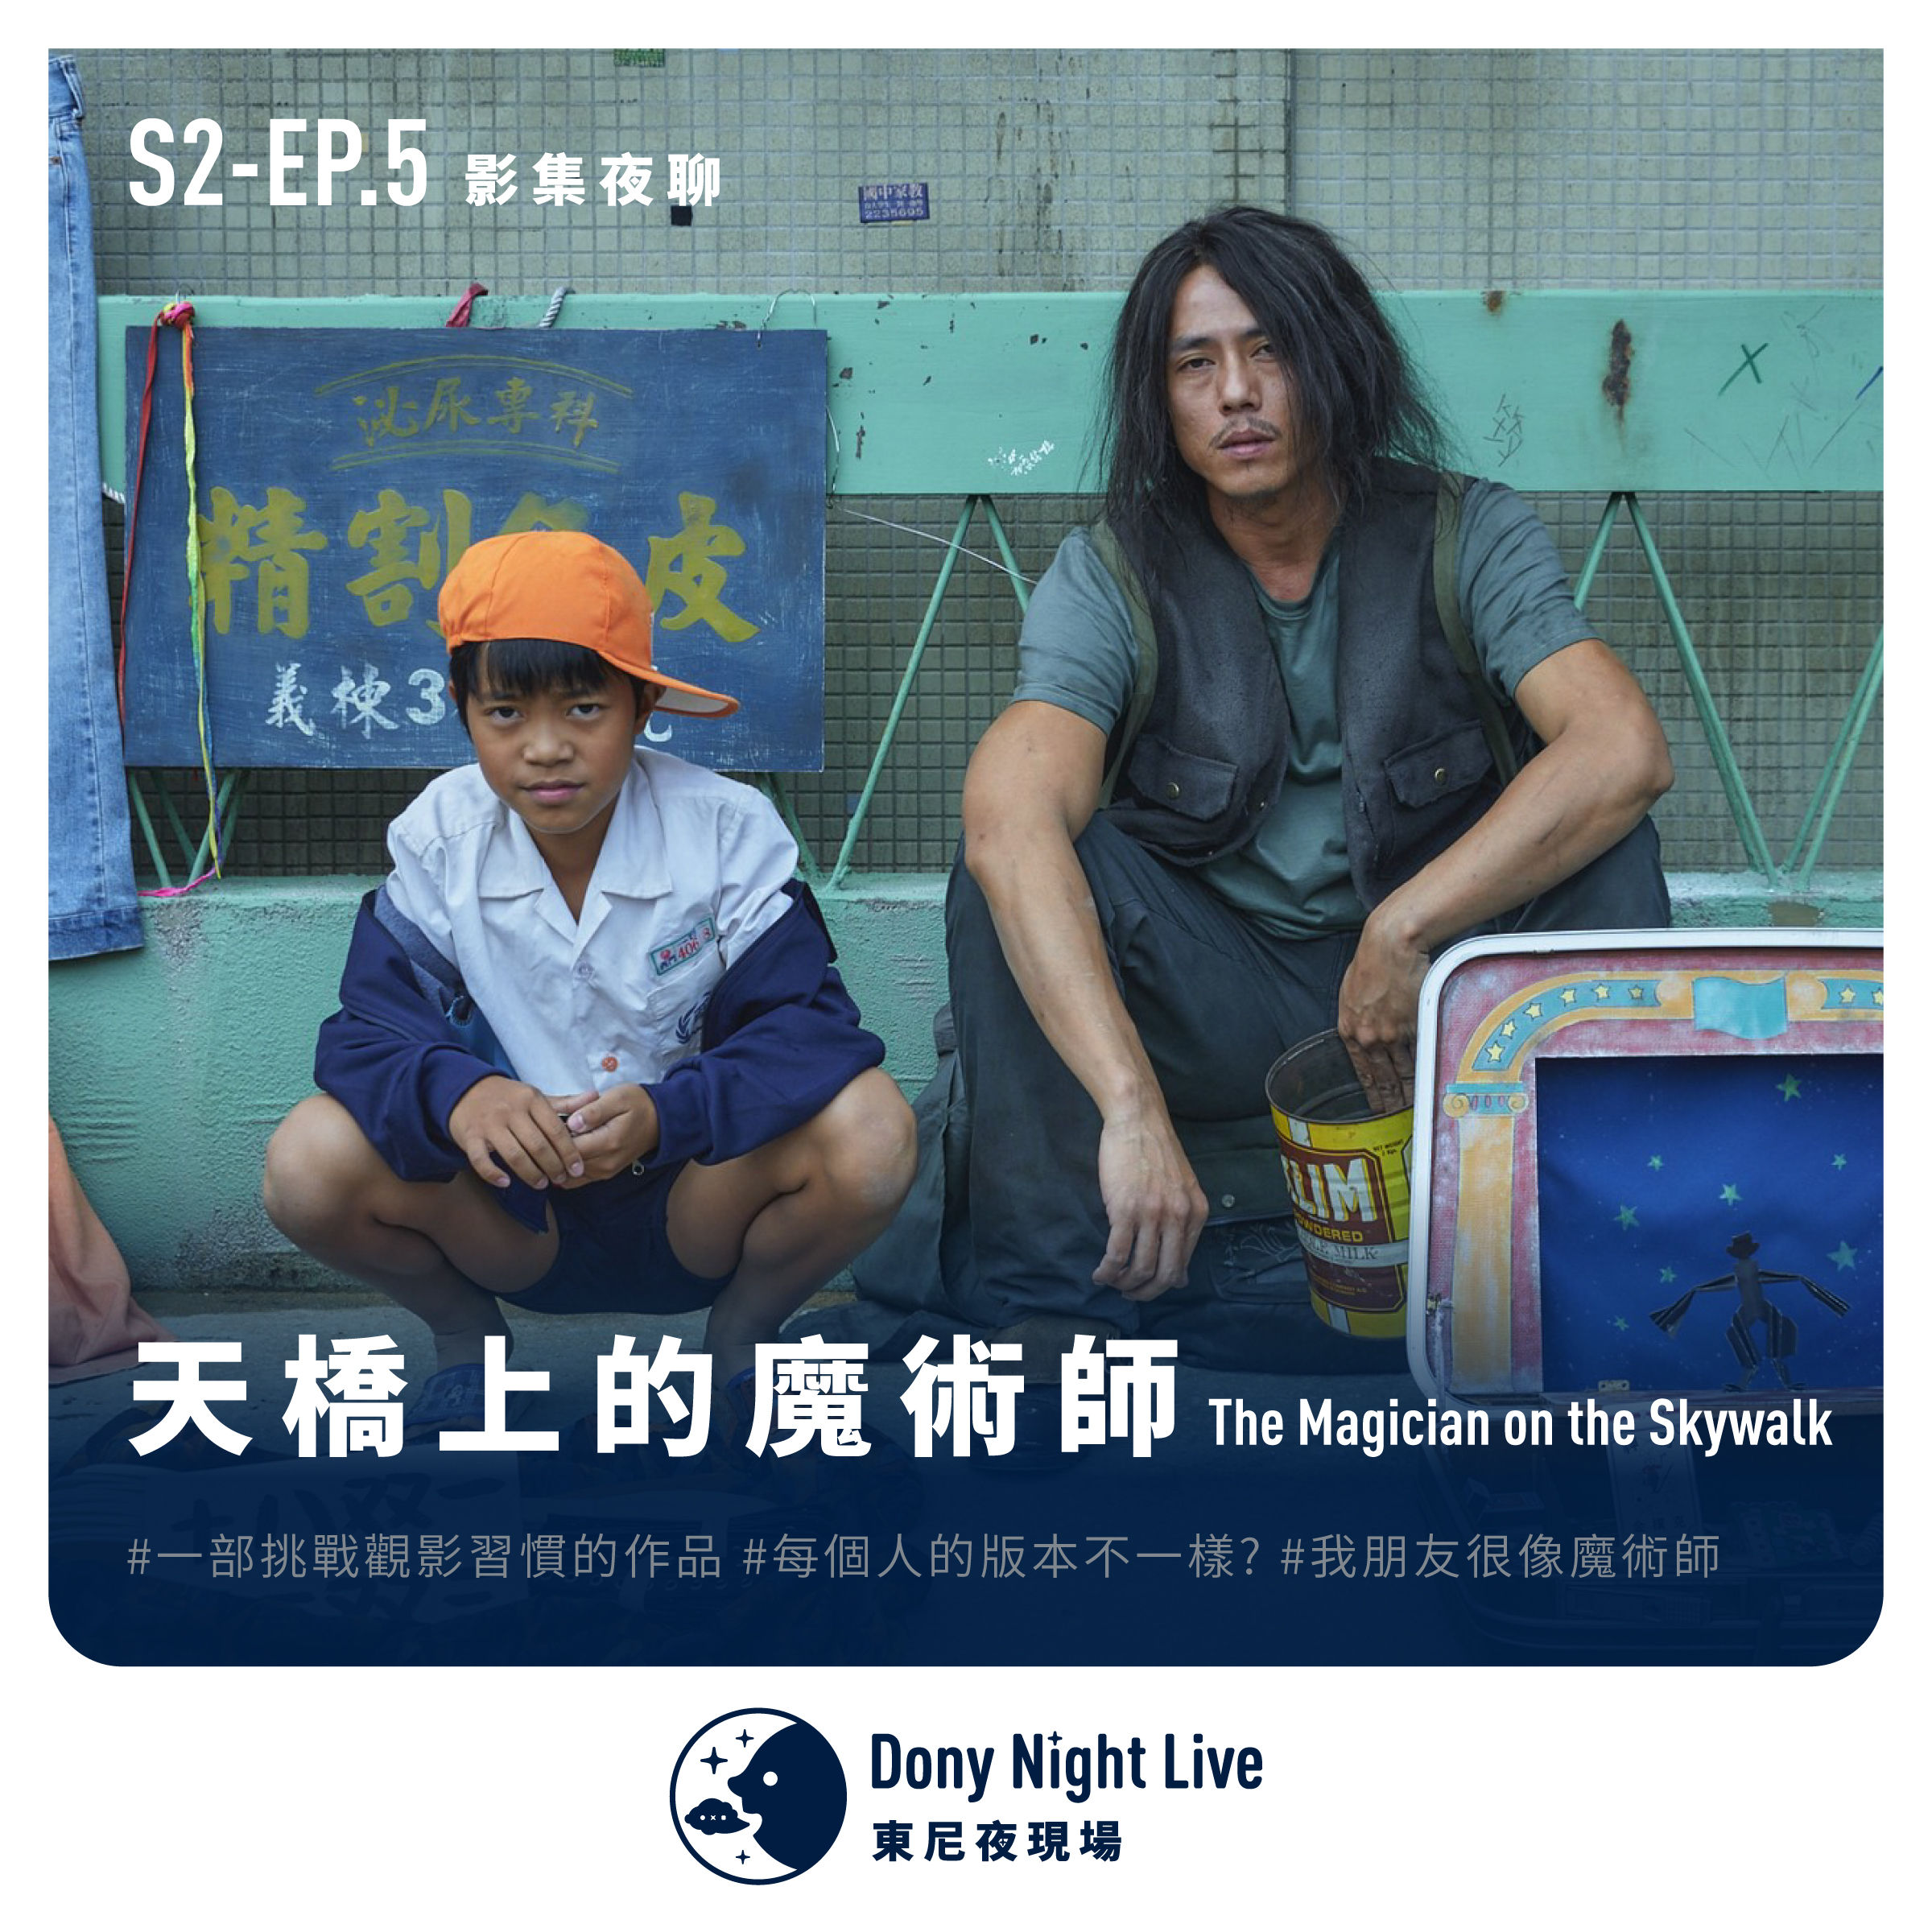 S2-EP5【影集夜聊】天橋上的魔術師 The Magician on the Skywalk